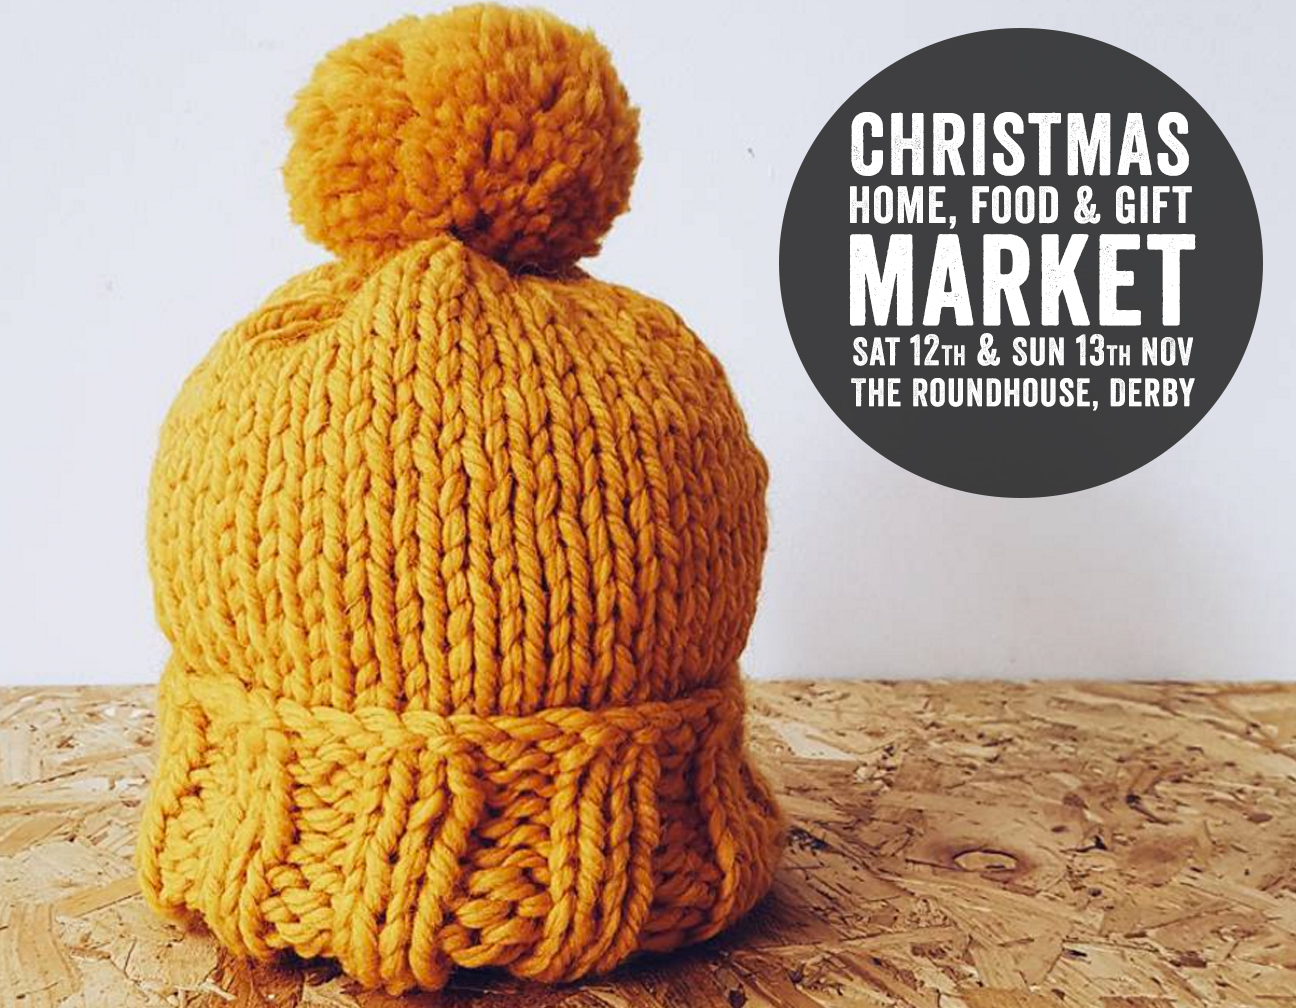 so satsuma derbyshire christmas market november 2016